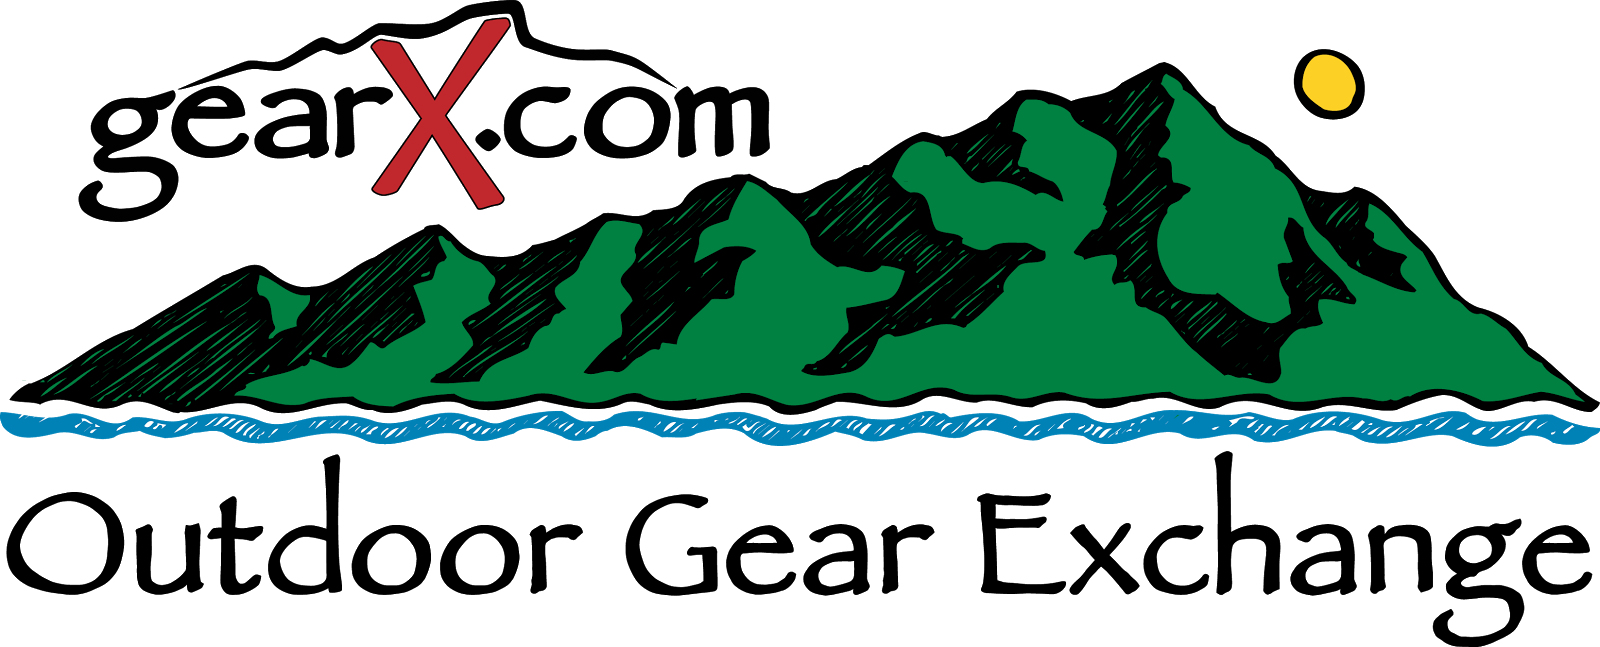 2017 CHC outdoor Gear Exchange logo